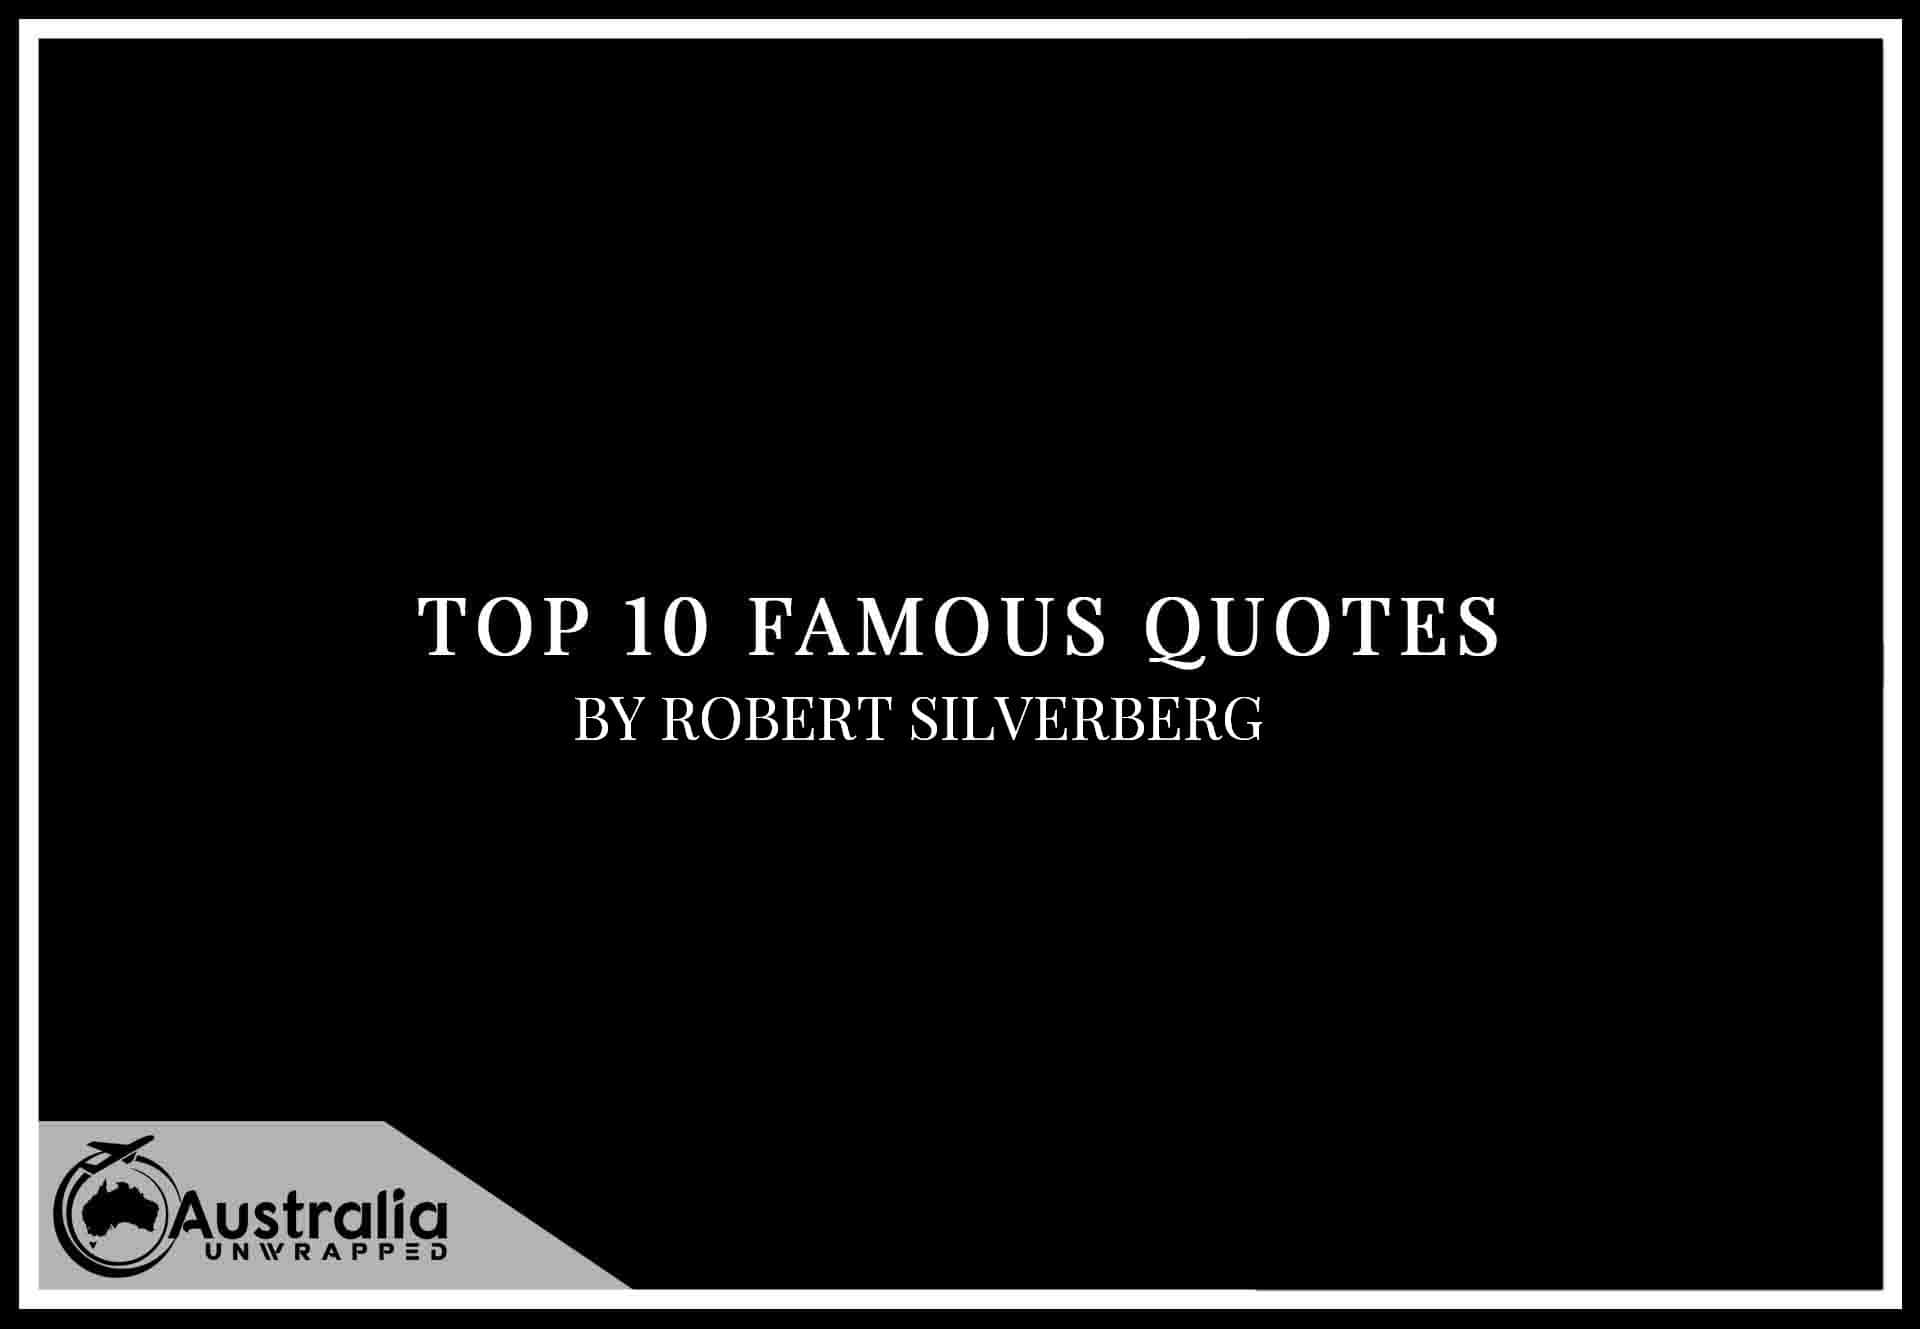 Top 10 Famous Quotes by Author Robert Silverberg